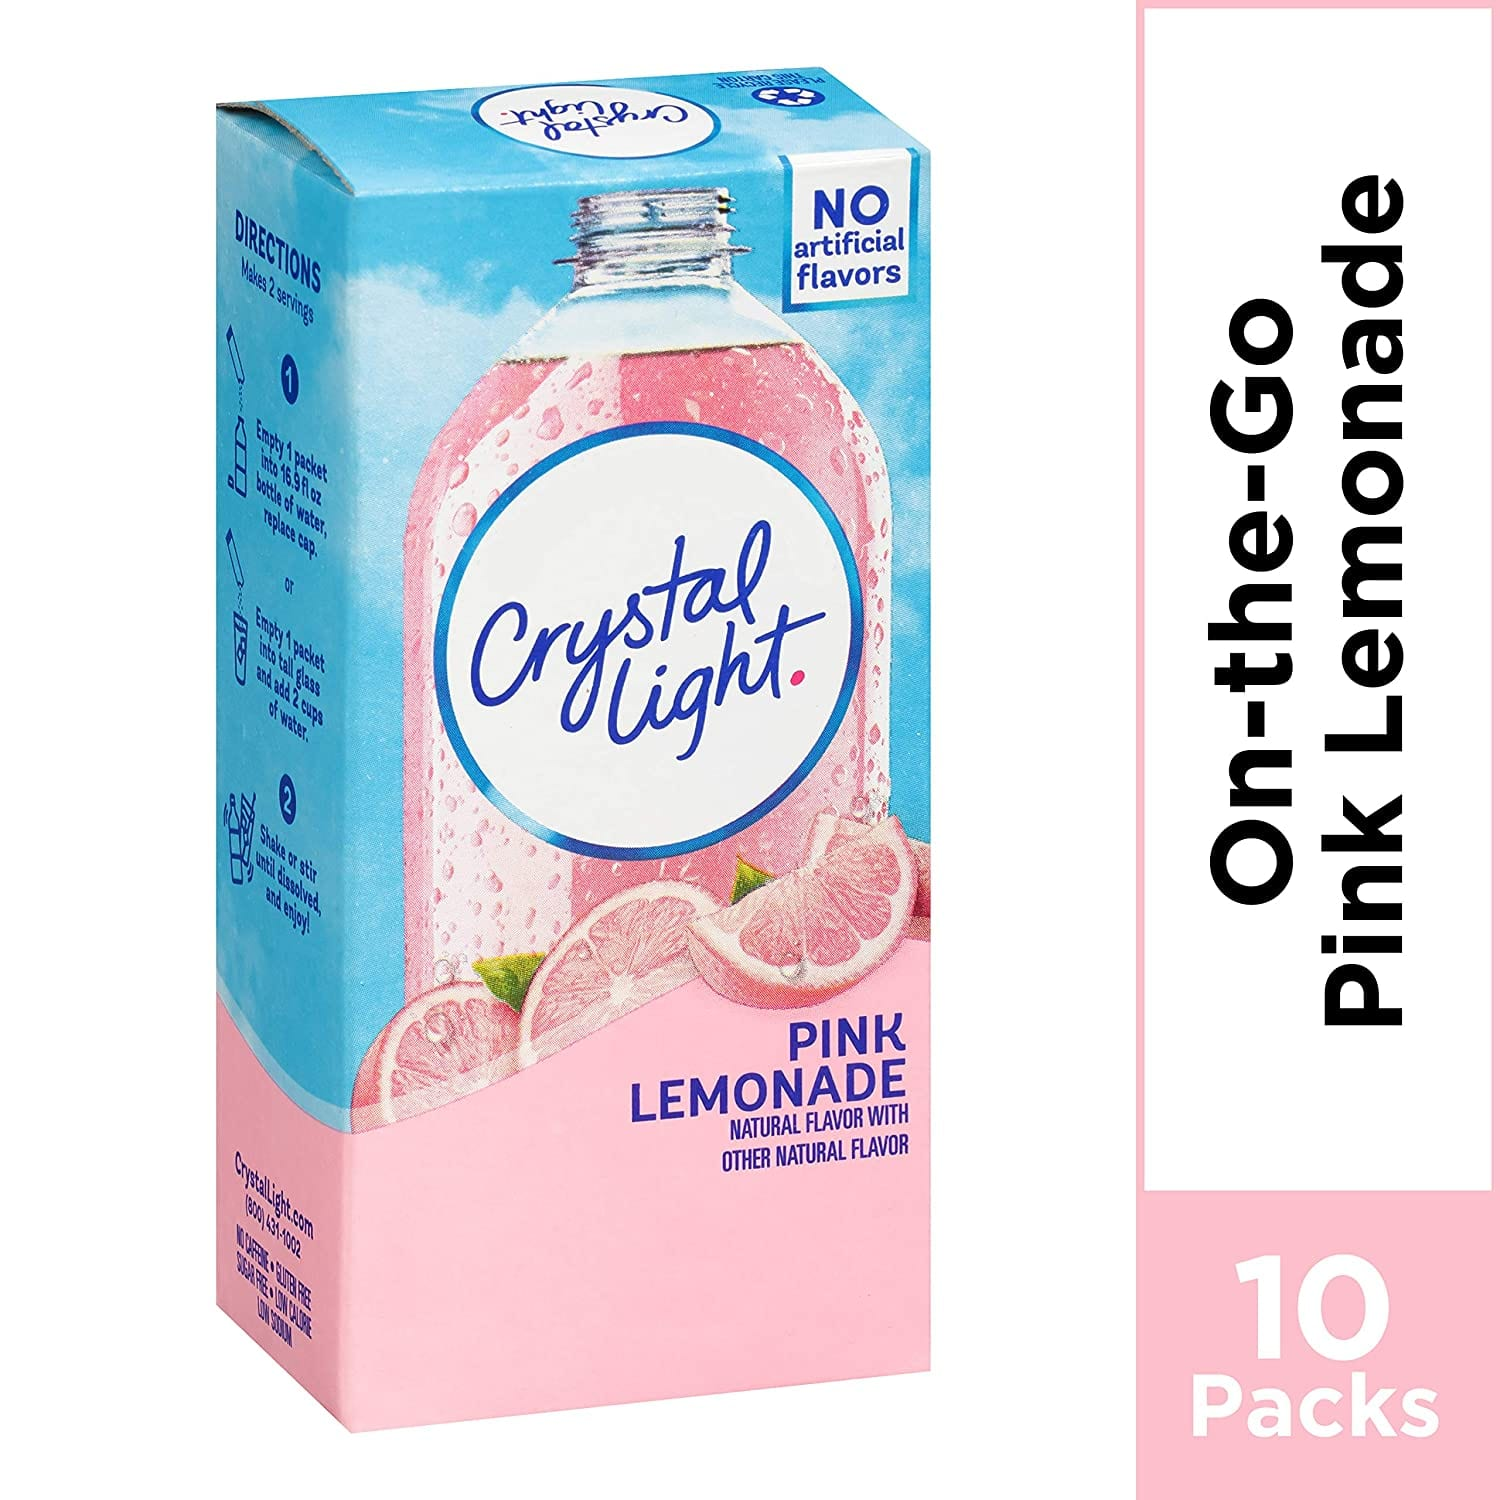 Crystal Light Pink Lemonade Drink Mix (10 On the Go Packets) $2.18 or less, FS w/ S&S